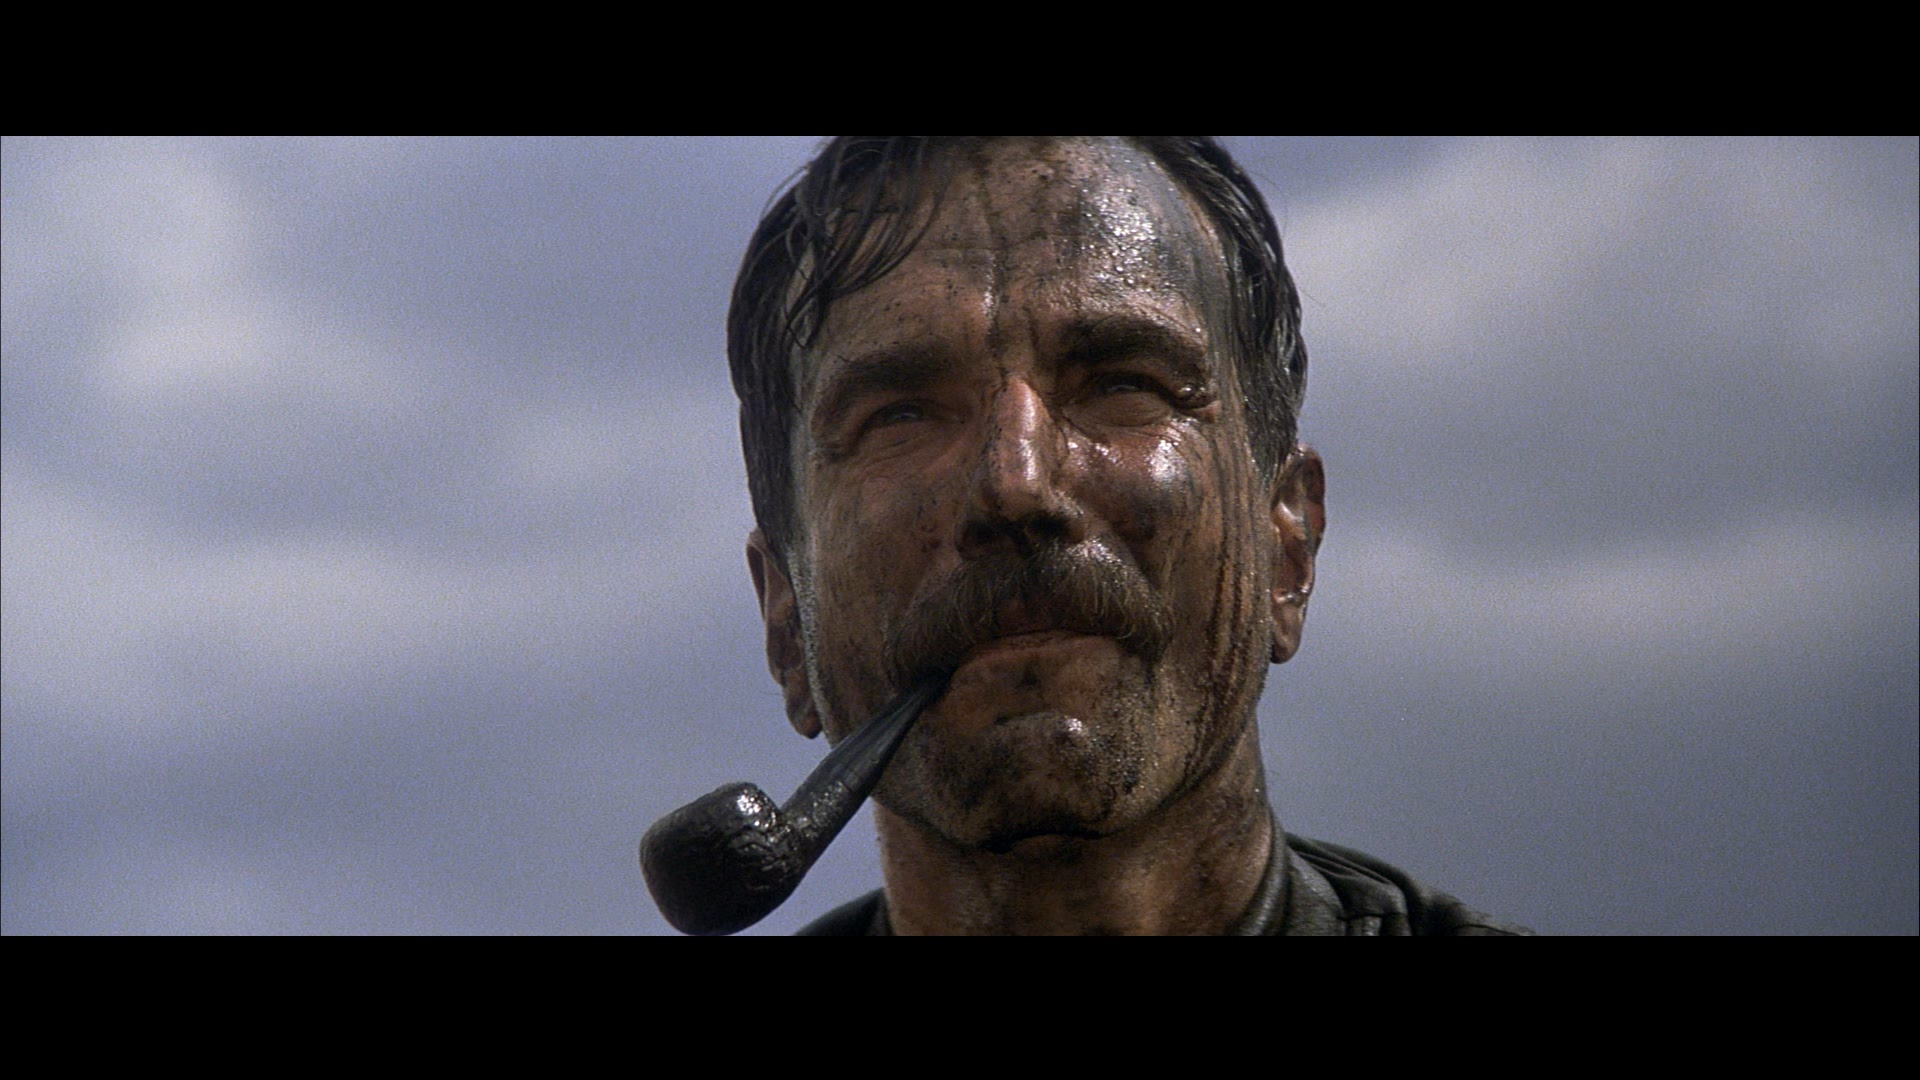 Daniel Plainview - Oil Man - There Will be Blood